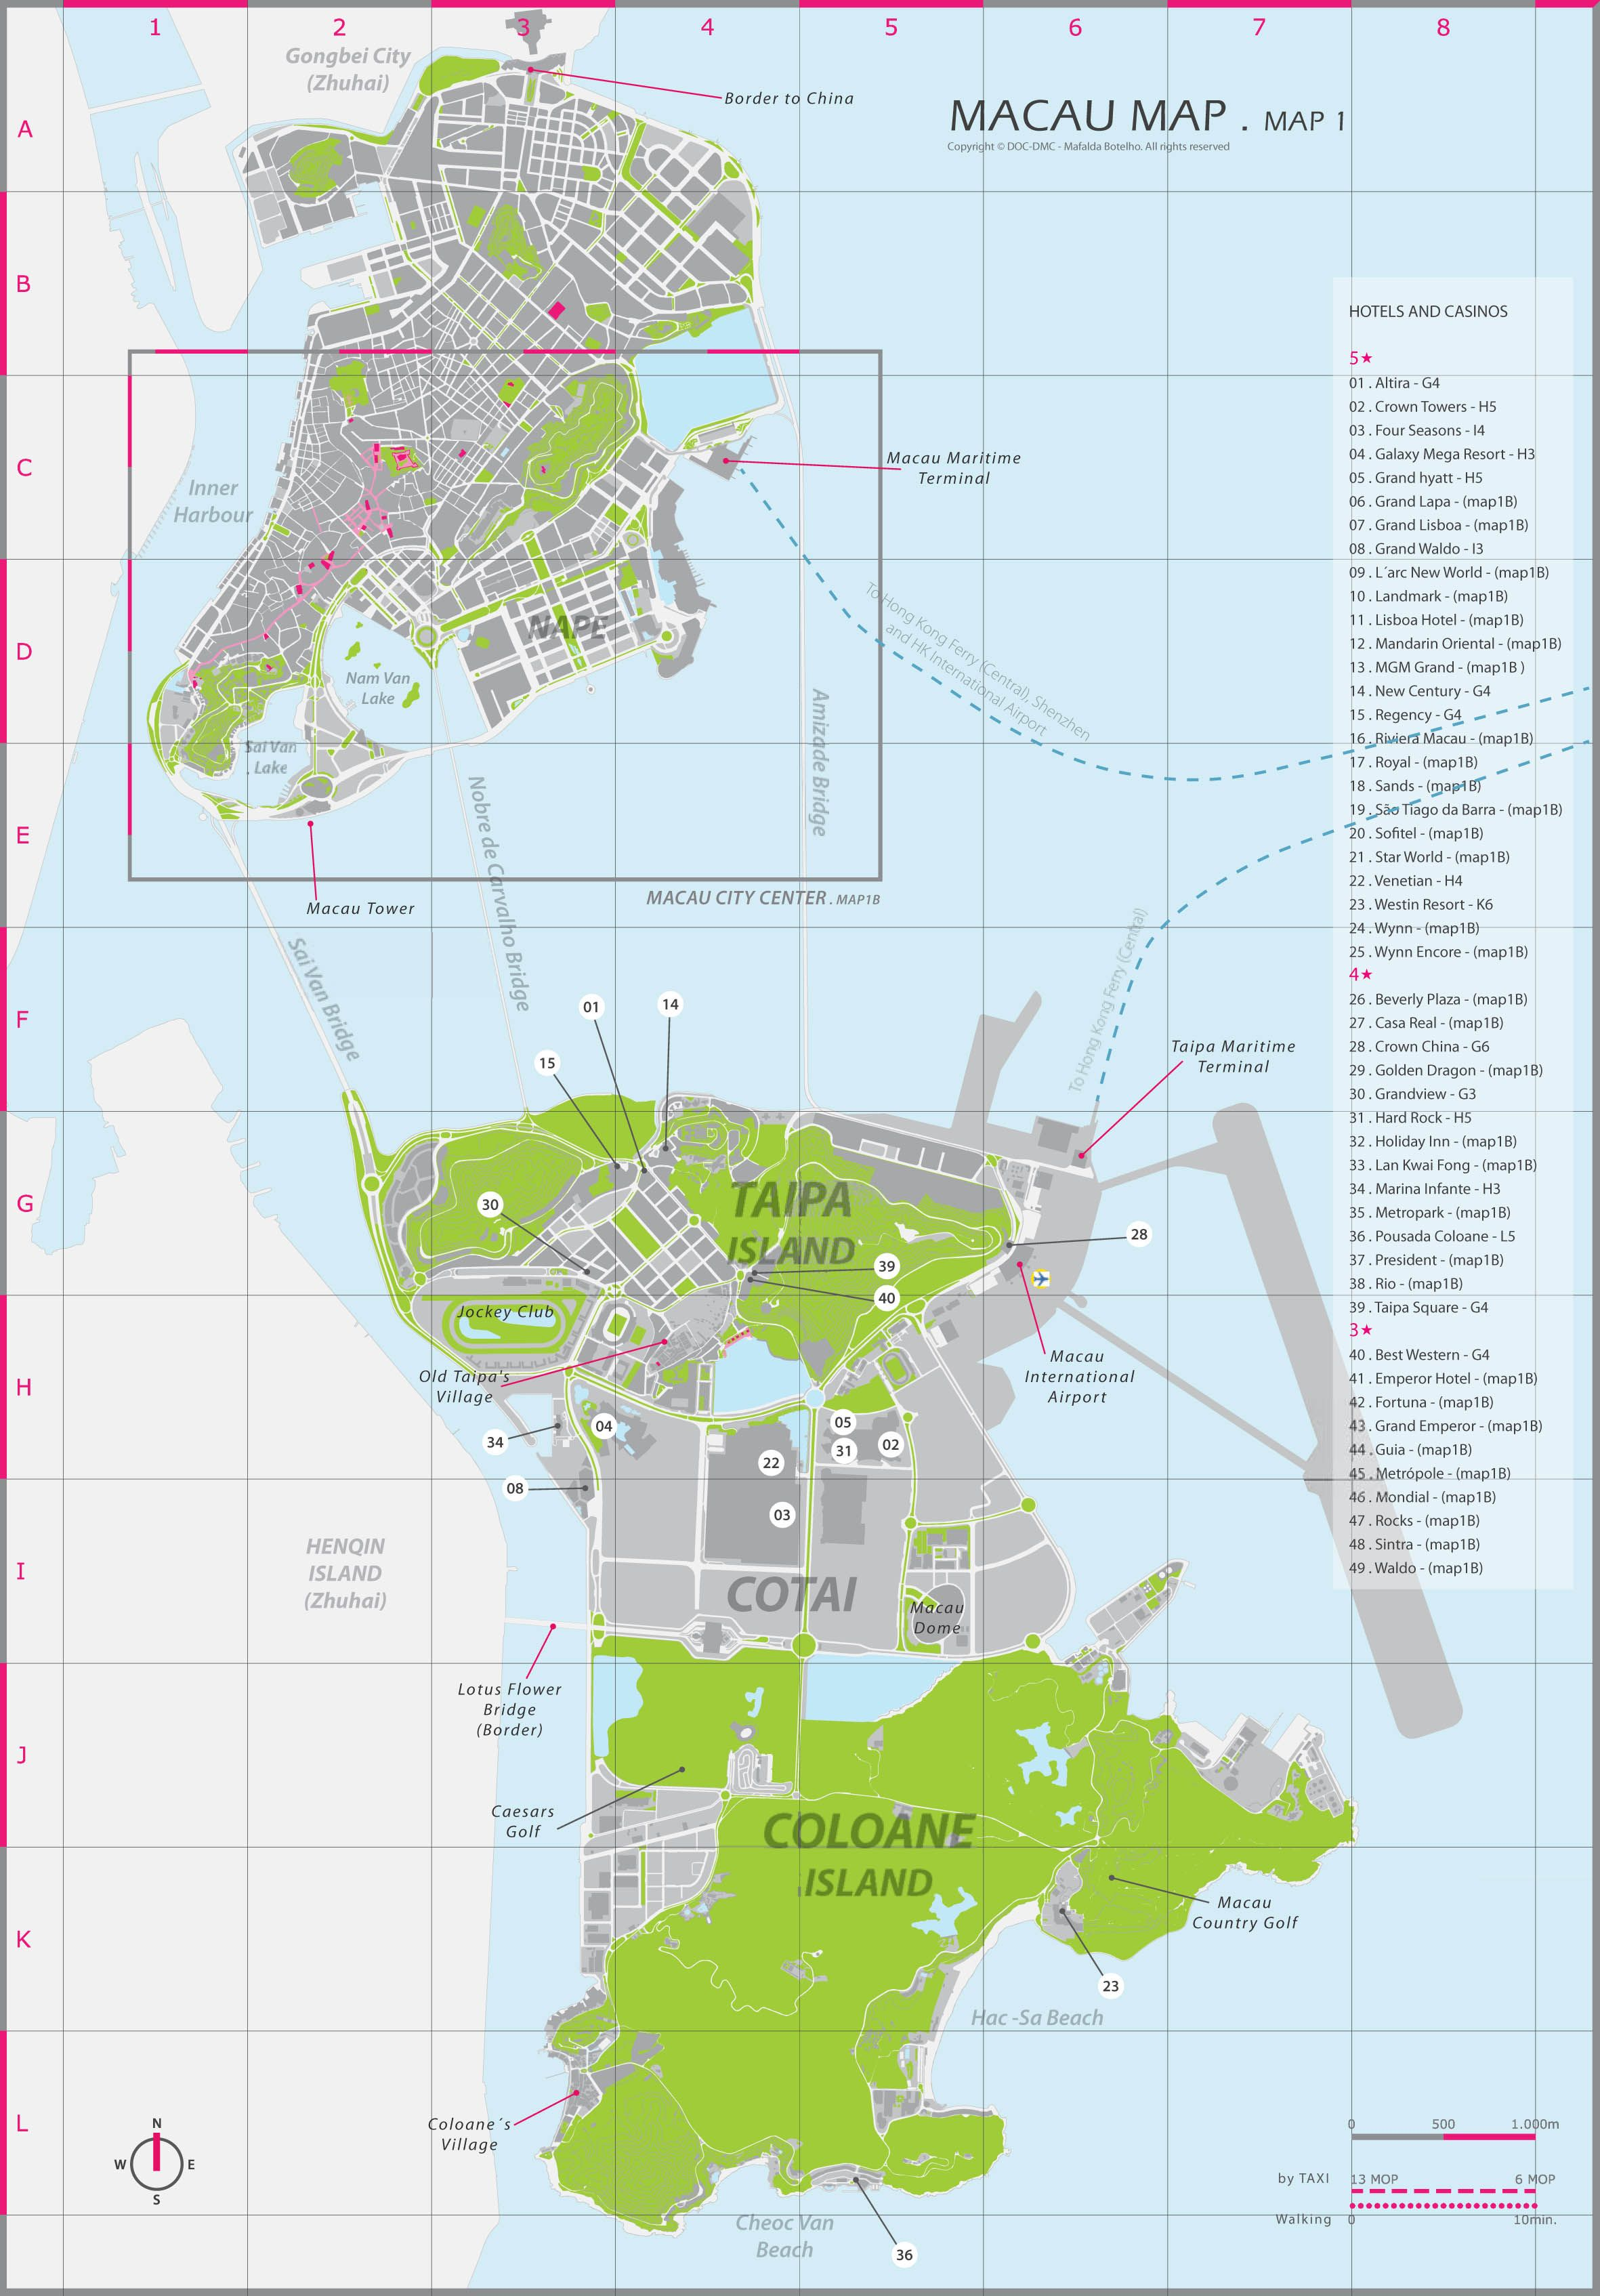 Macau Map (Cotai, Taipa and Coloane)